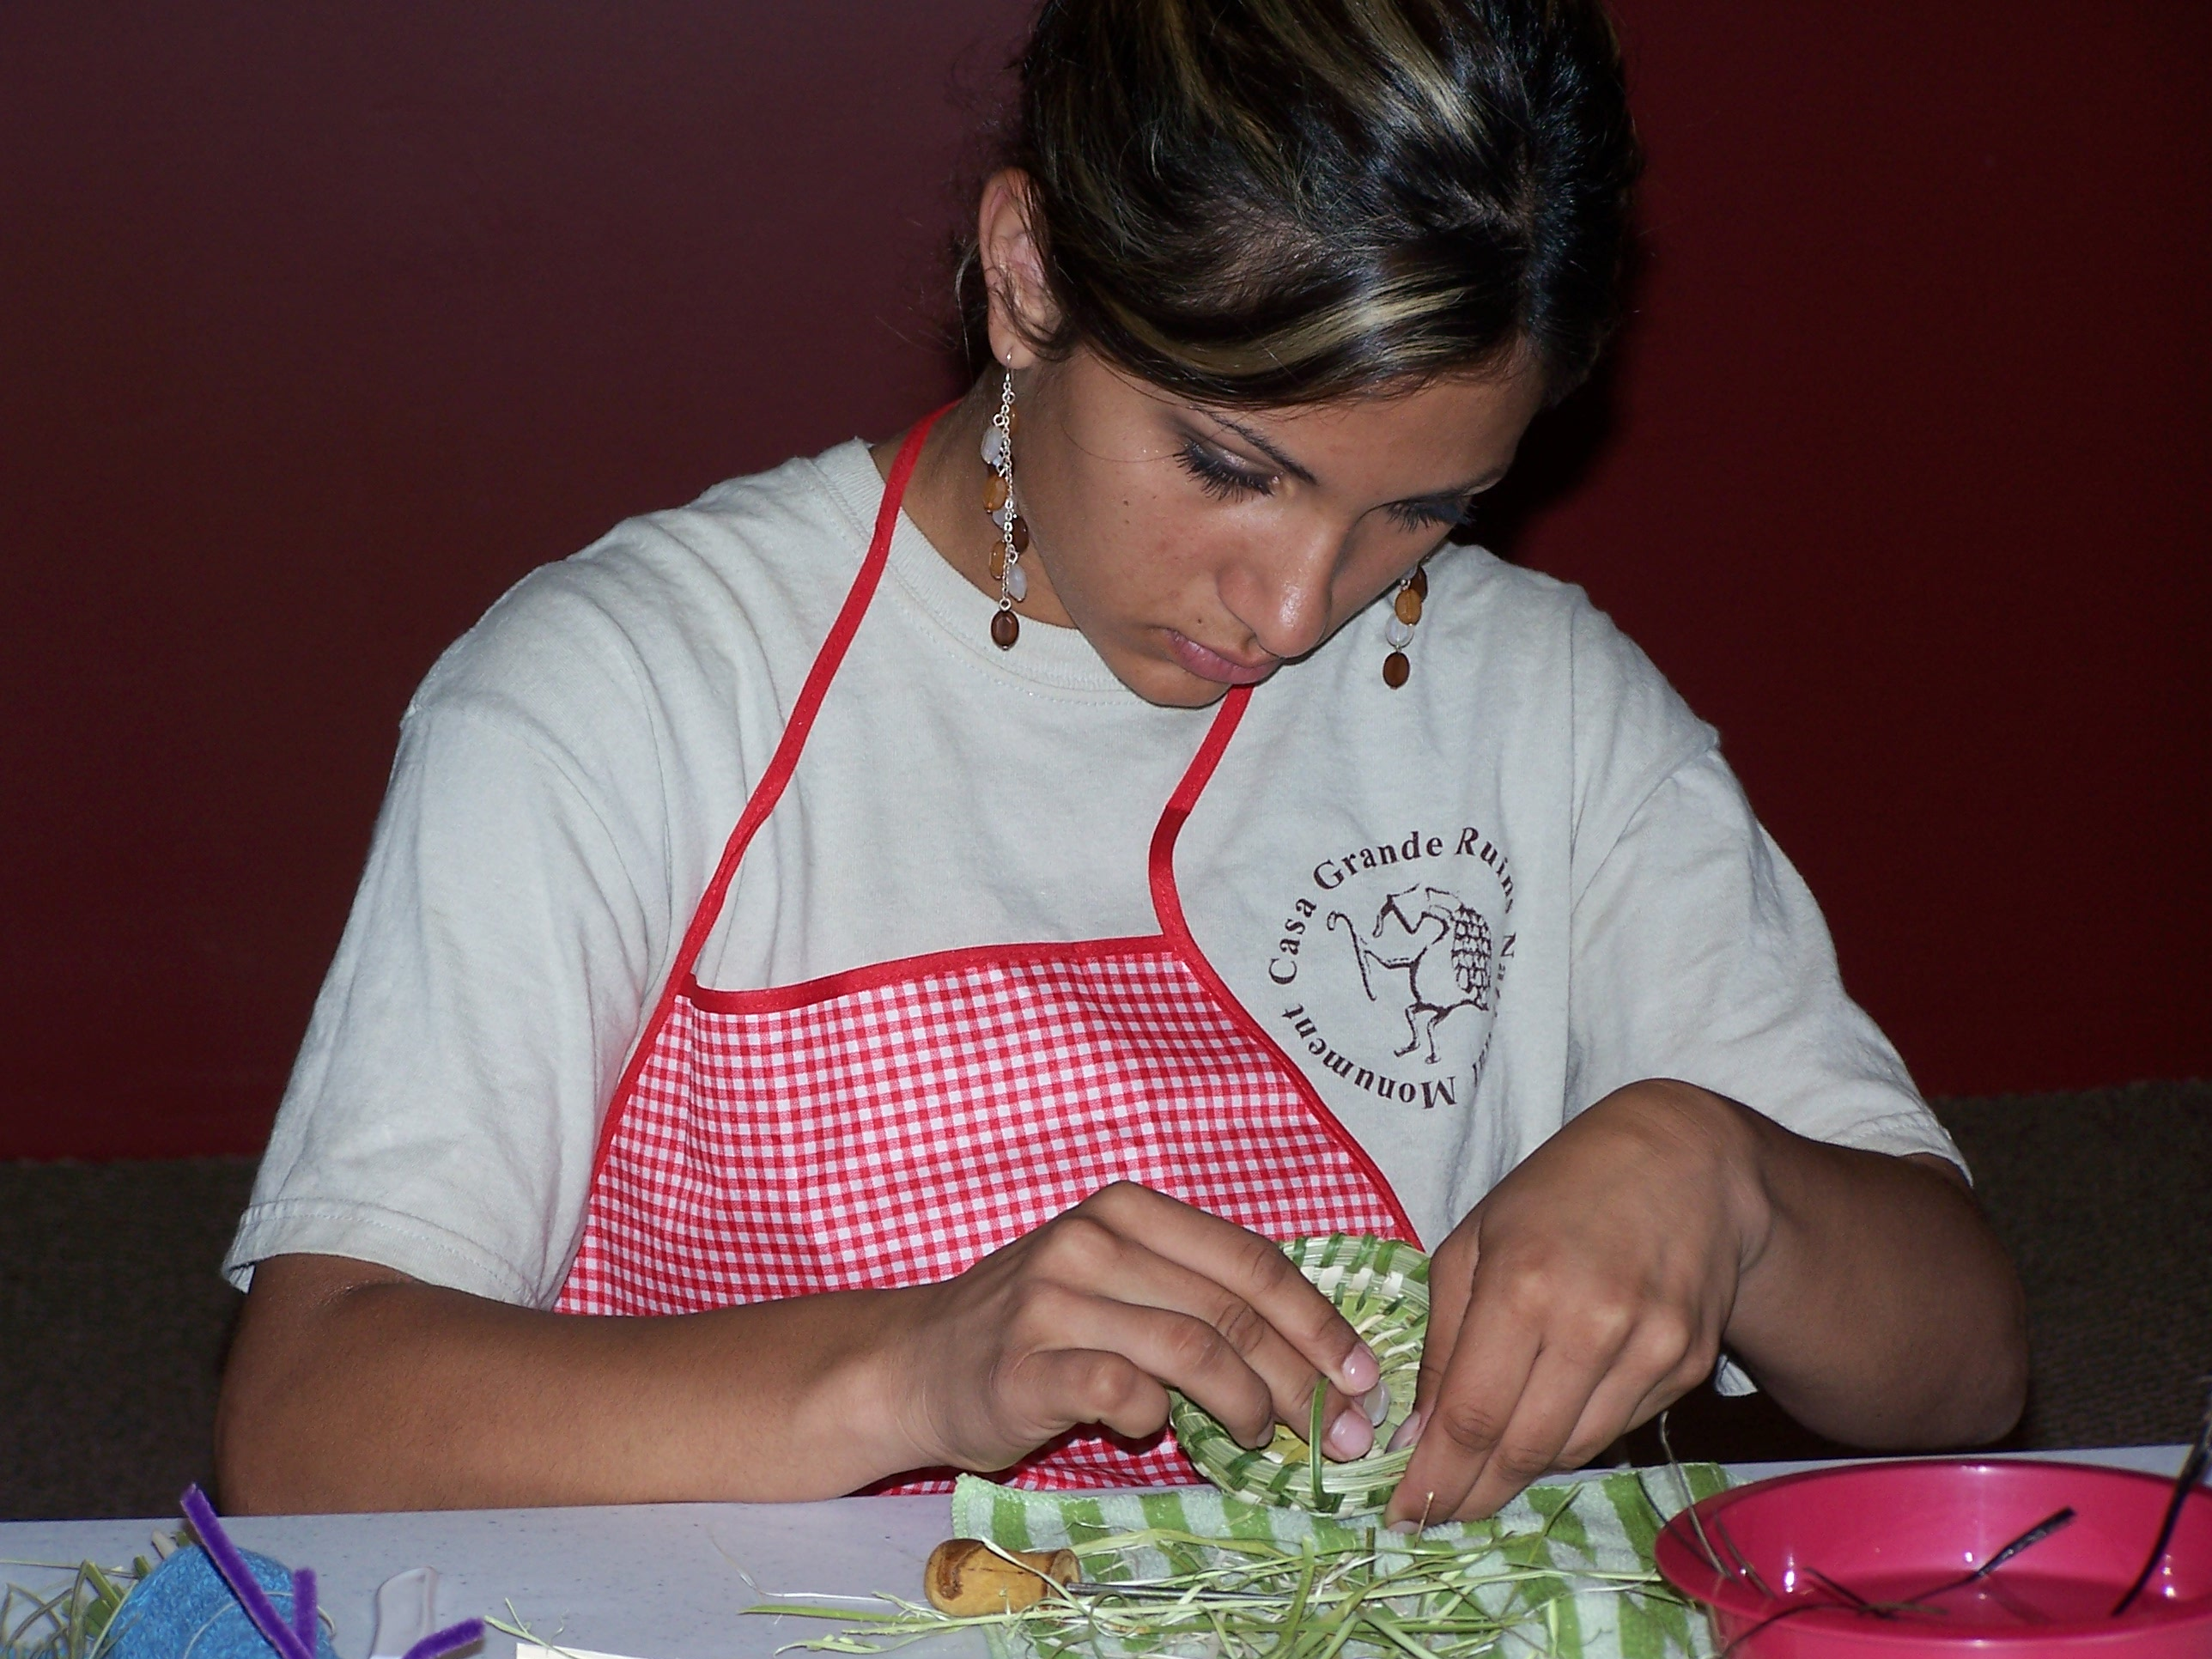 Sitting at a table with her work apron on YCC student works green yucca around the bear grass on the basket's edge